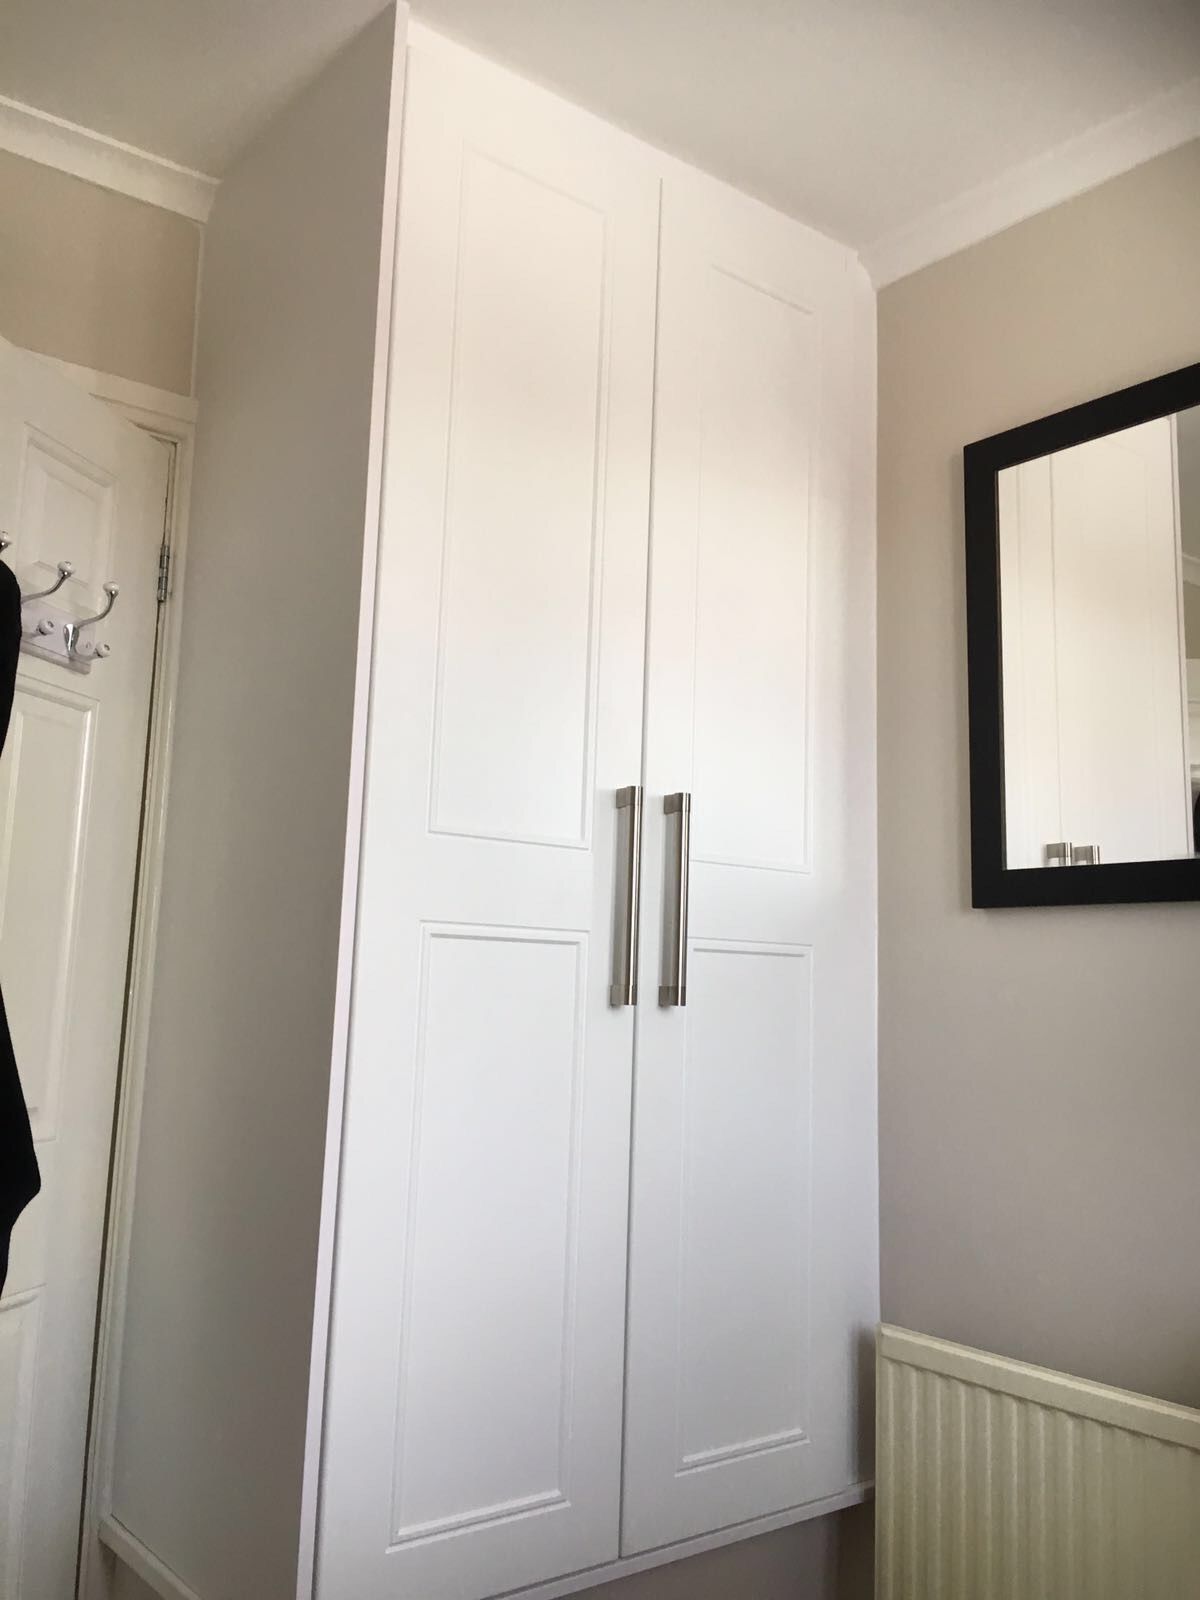 Ascot White Doors With Key Bar Handles Above A Stairbox Grey Bedroom Decor Bulkhead Bedroom Stair Box In Bedroom